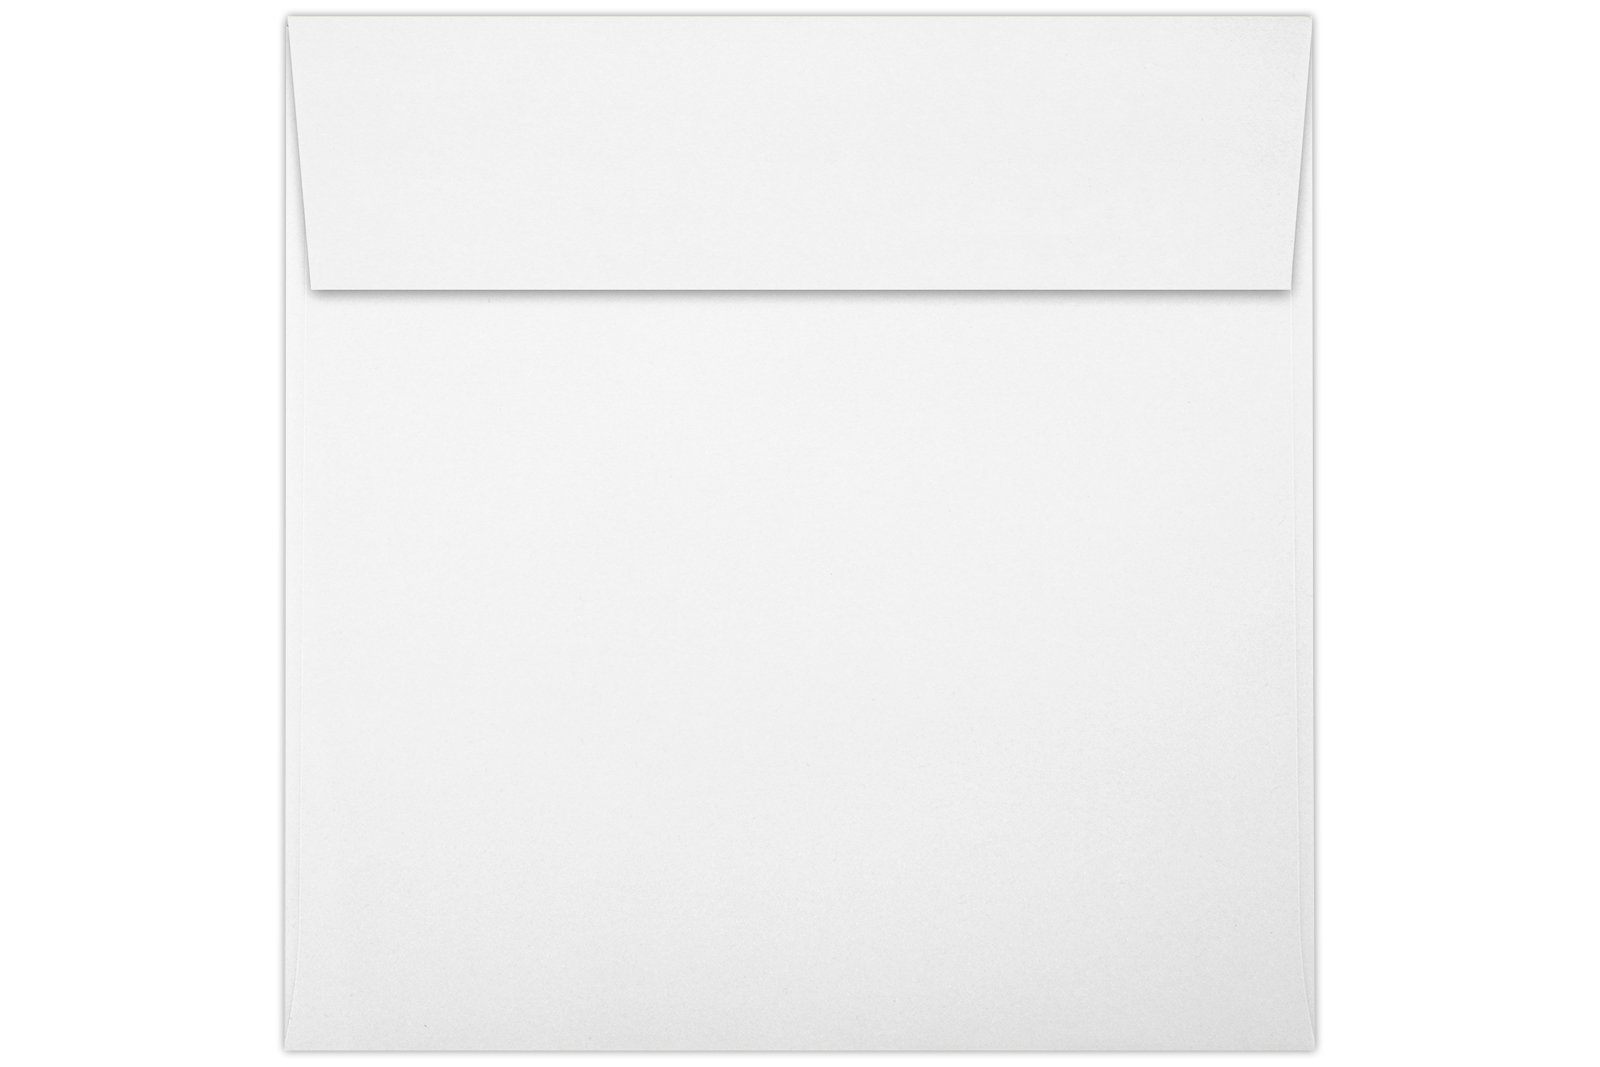 6 x 6 Square Envelopes w/Peel & Press - 80lb. Bright White (1,000 Qty.) | Perfect For Invitations, Thank You Notes, RSVPs, Greeting Cards, Weddings or any Announcement | 80lb Text Paper | 8525-80W-1M